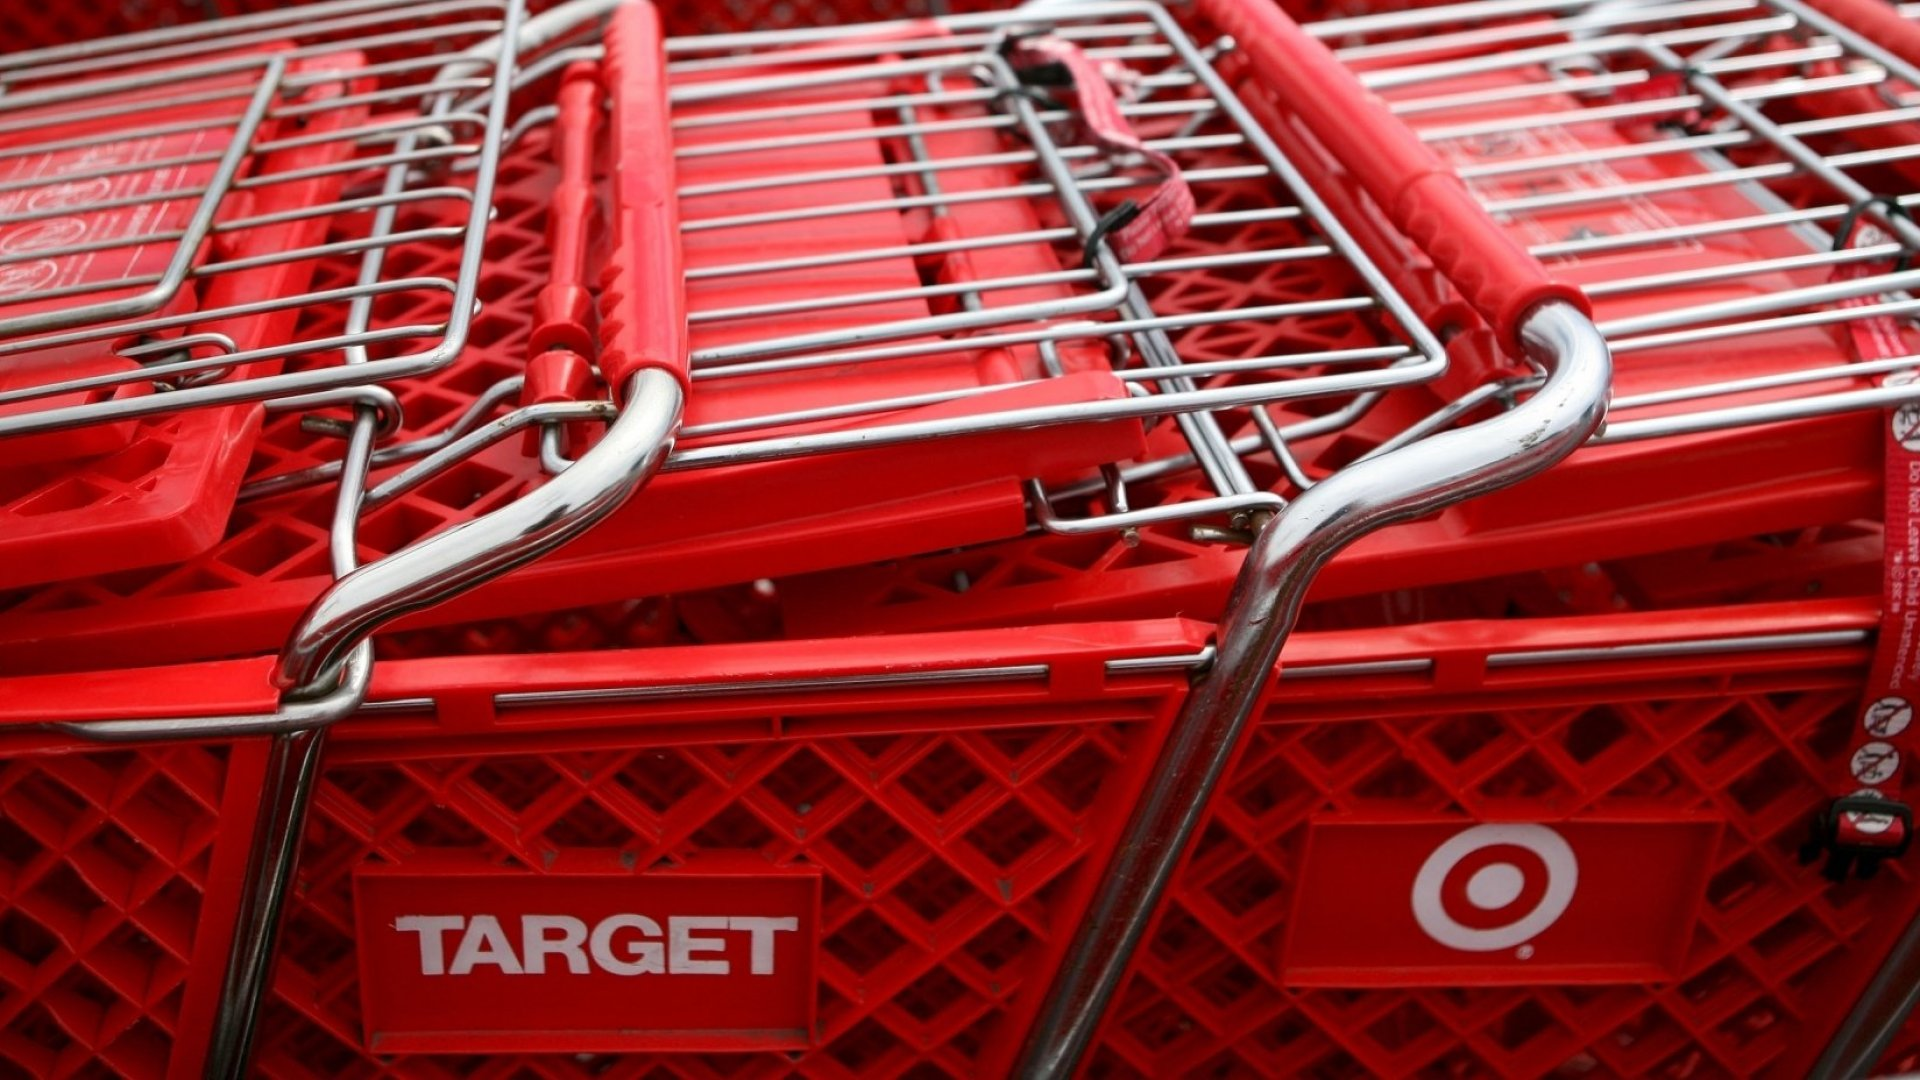 Target Just Made a Huge Announcement That May Completely Change the Way It Does Business. Here's Why It's Brilliant